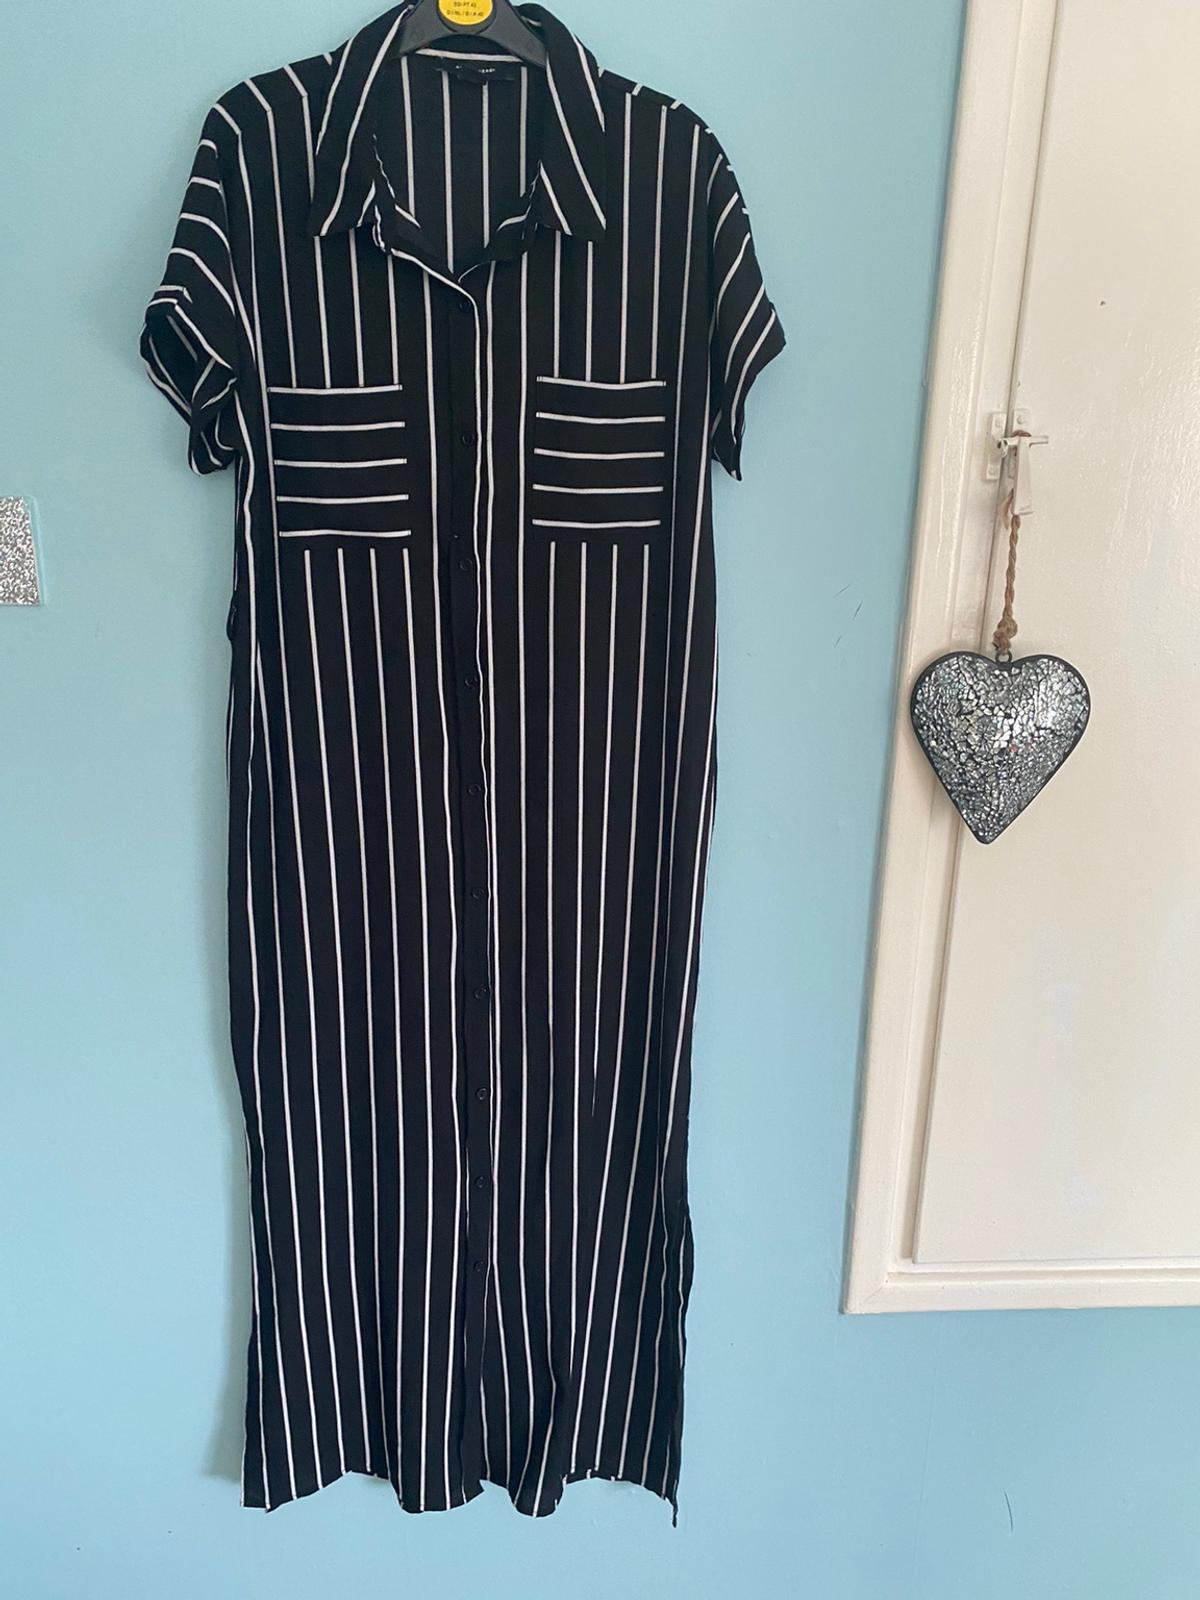 In Great Condition Happy to post items from £3 💌 My Hermes (Can Combined Postage) Items can also be purchased through Shpock wallet 🌟 Will accept paypal, fees must be added if paying Via buisness option* *Collection is Kingswinford DY6 *Will hold items for 3 days or items will be relisted **TIMEWAISTERS WILL B REPORTED! 🌟Be sure to follow me for more regular bargains🌟 👡👢🛍